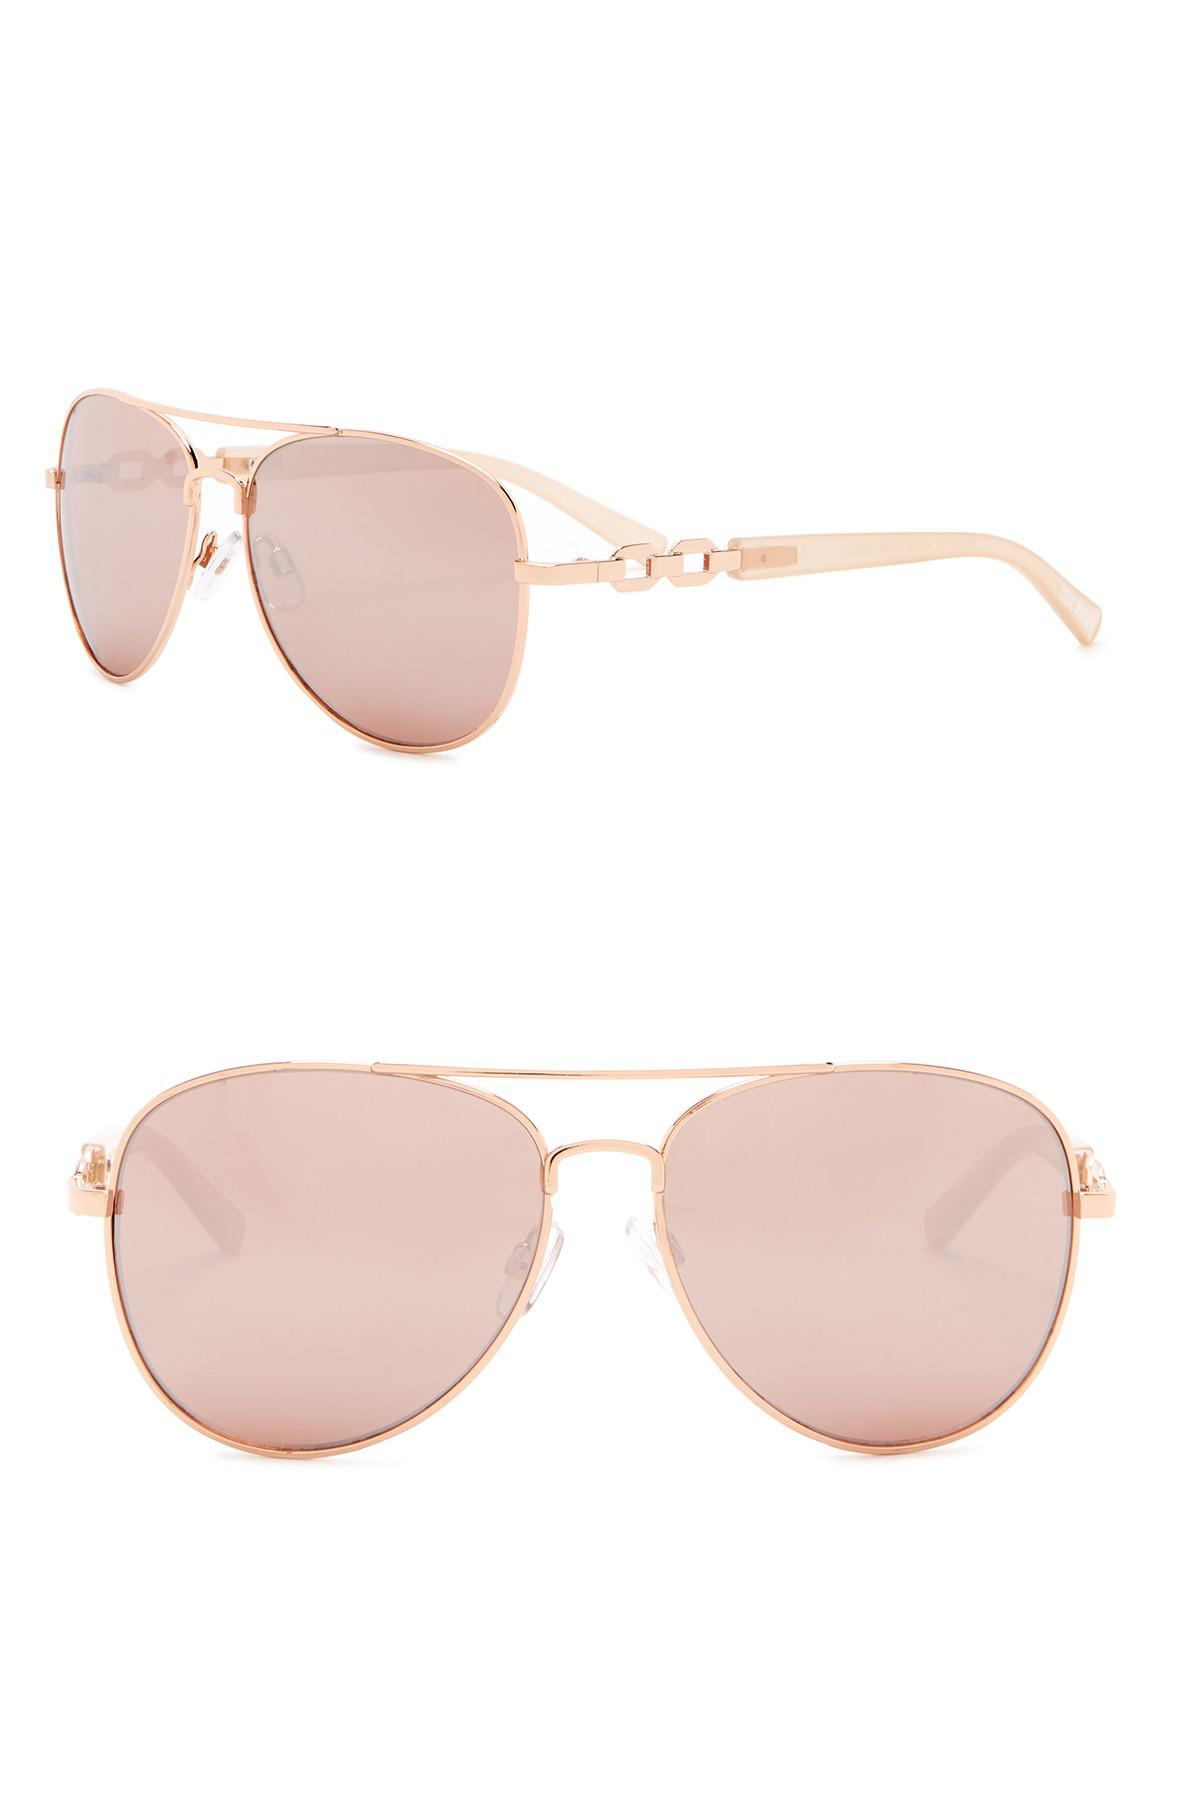 50214b03dc9 Lyst - Steve Madden 57mm Aviator With Chain Temple Sunglasses in Pink